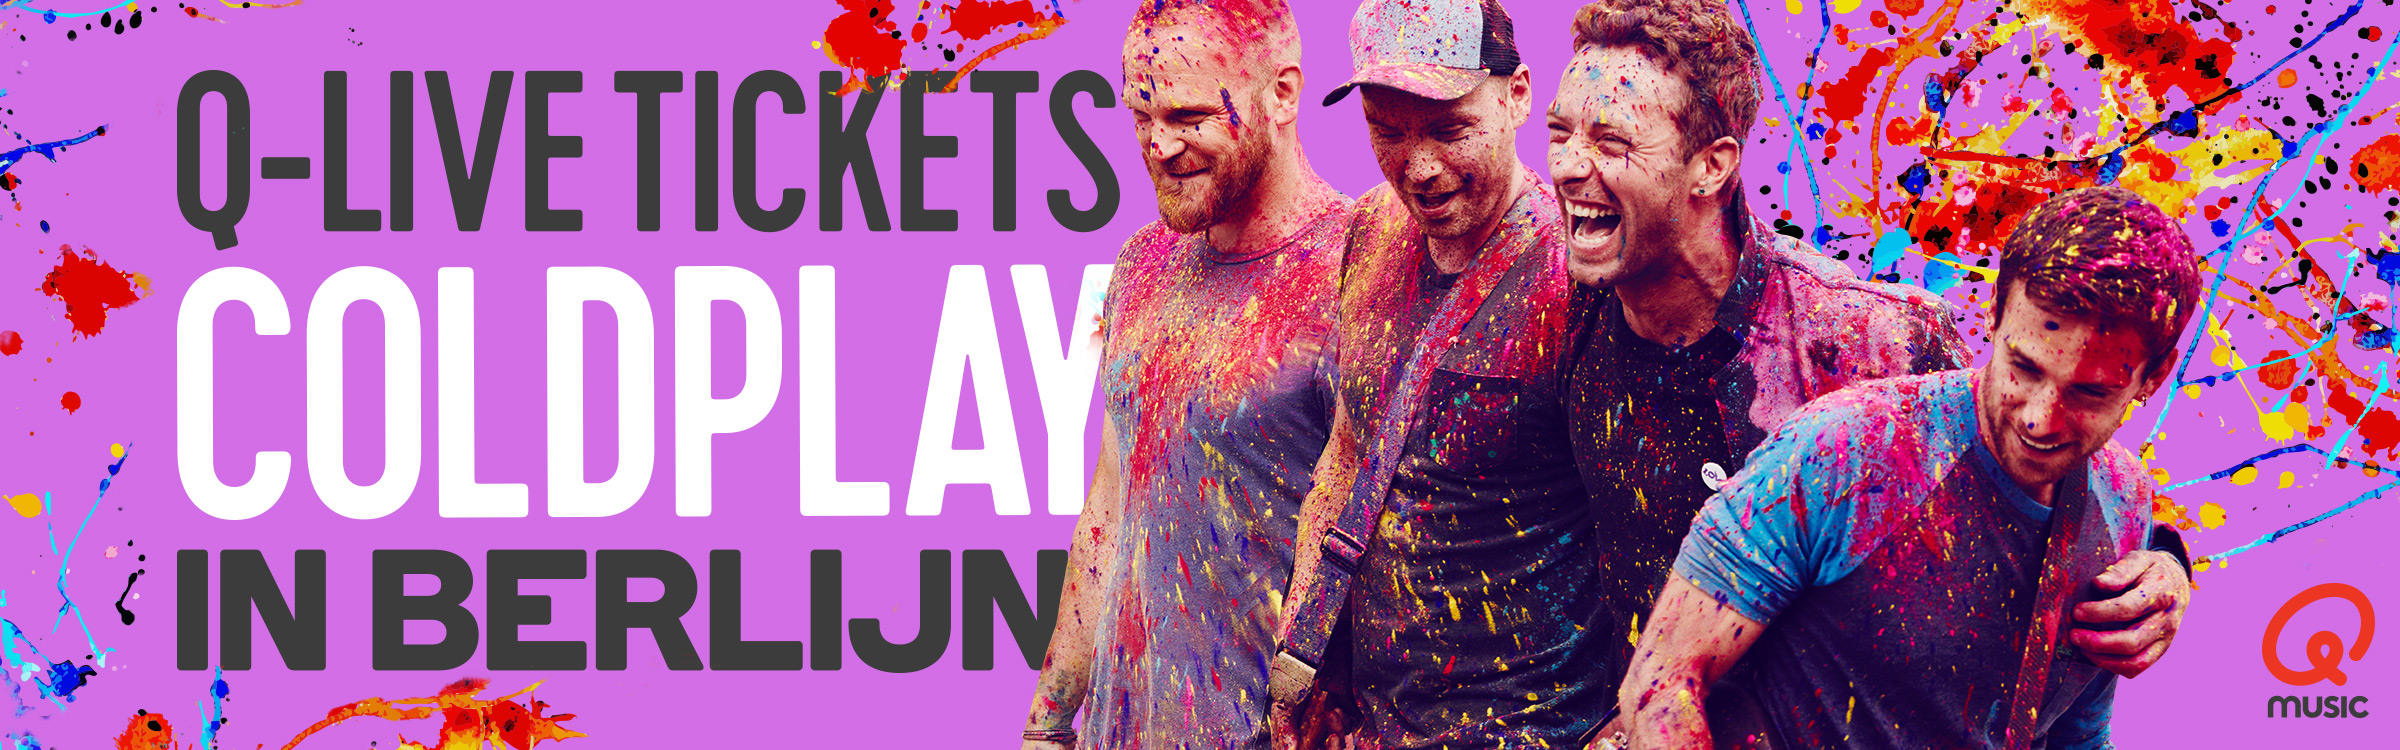 Qmusic actionheader coldplay